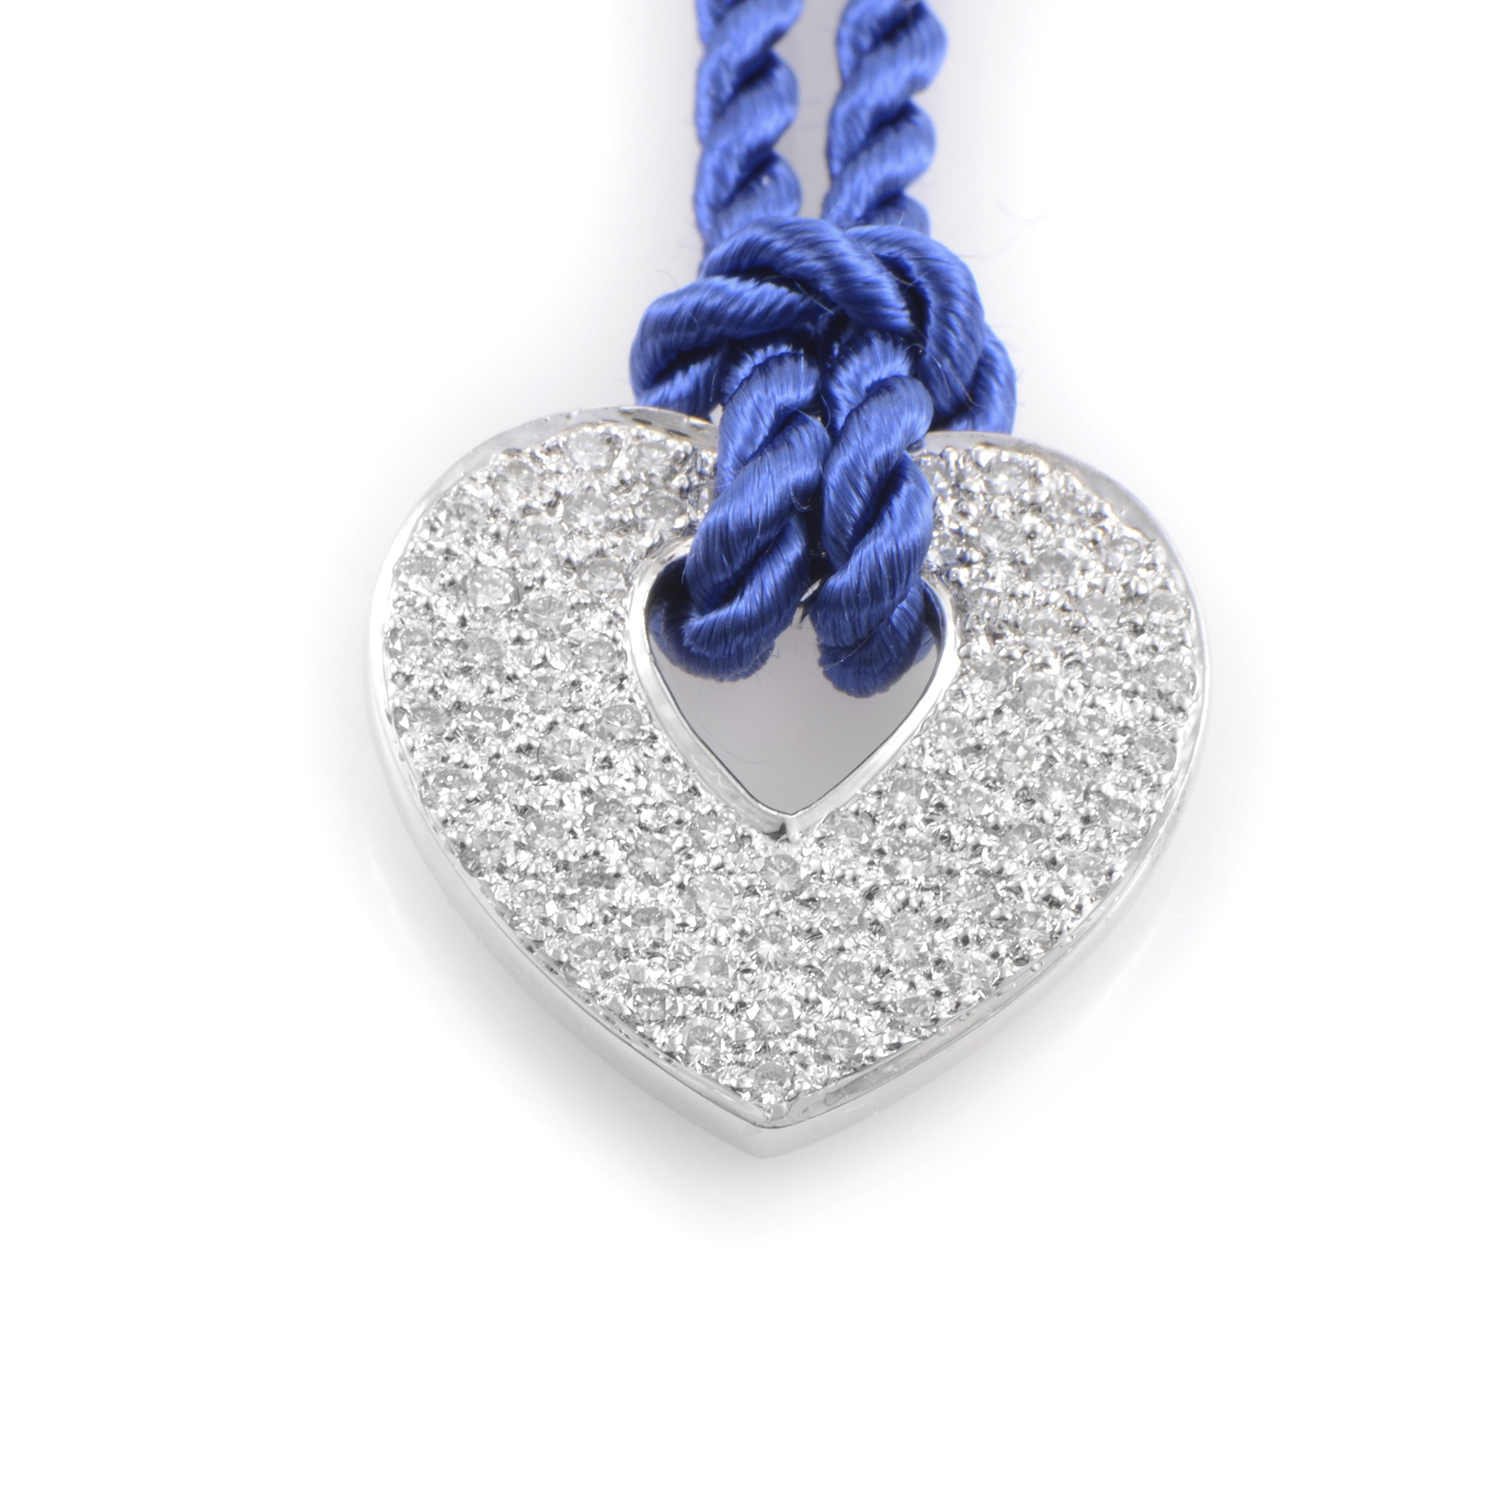 18K White Gold Diamond Pendant & Periwinkle Blue Cord Necklace PPC0030RBLU